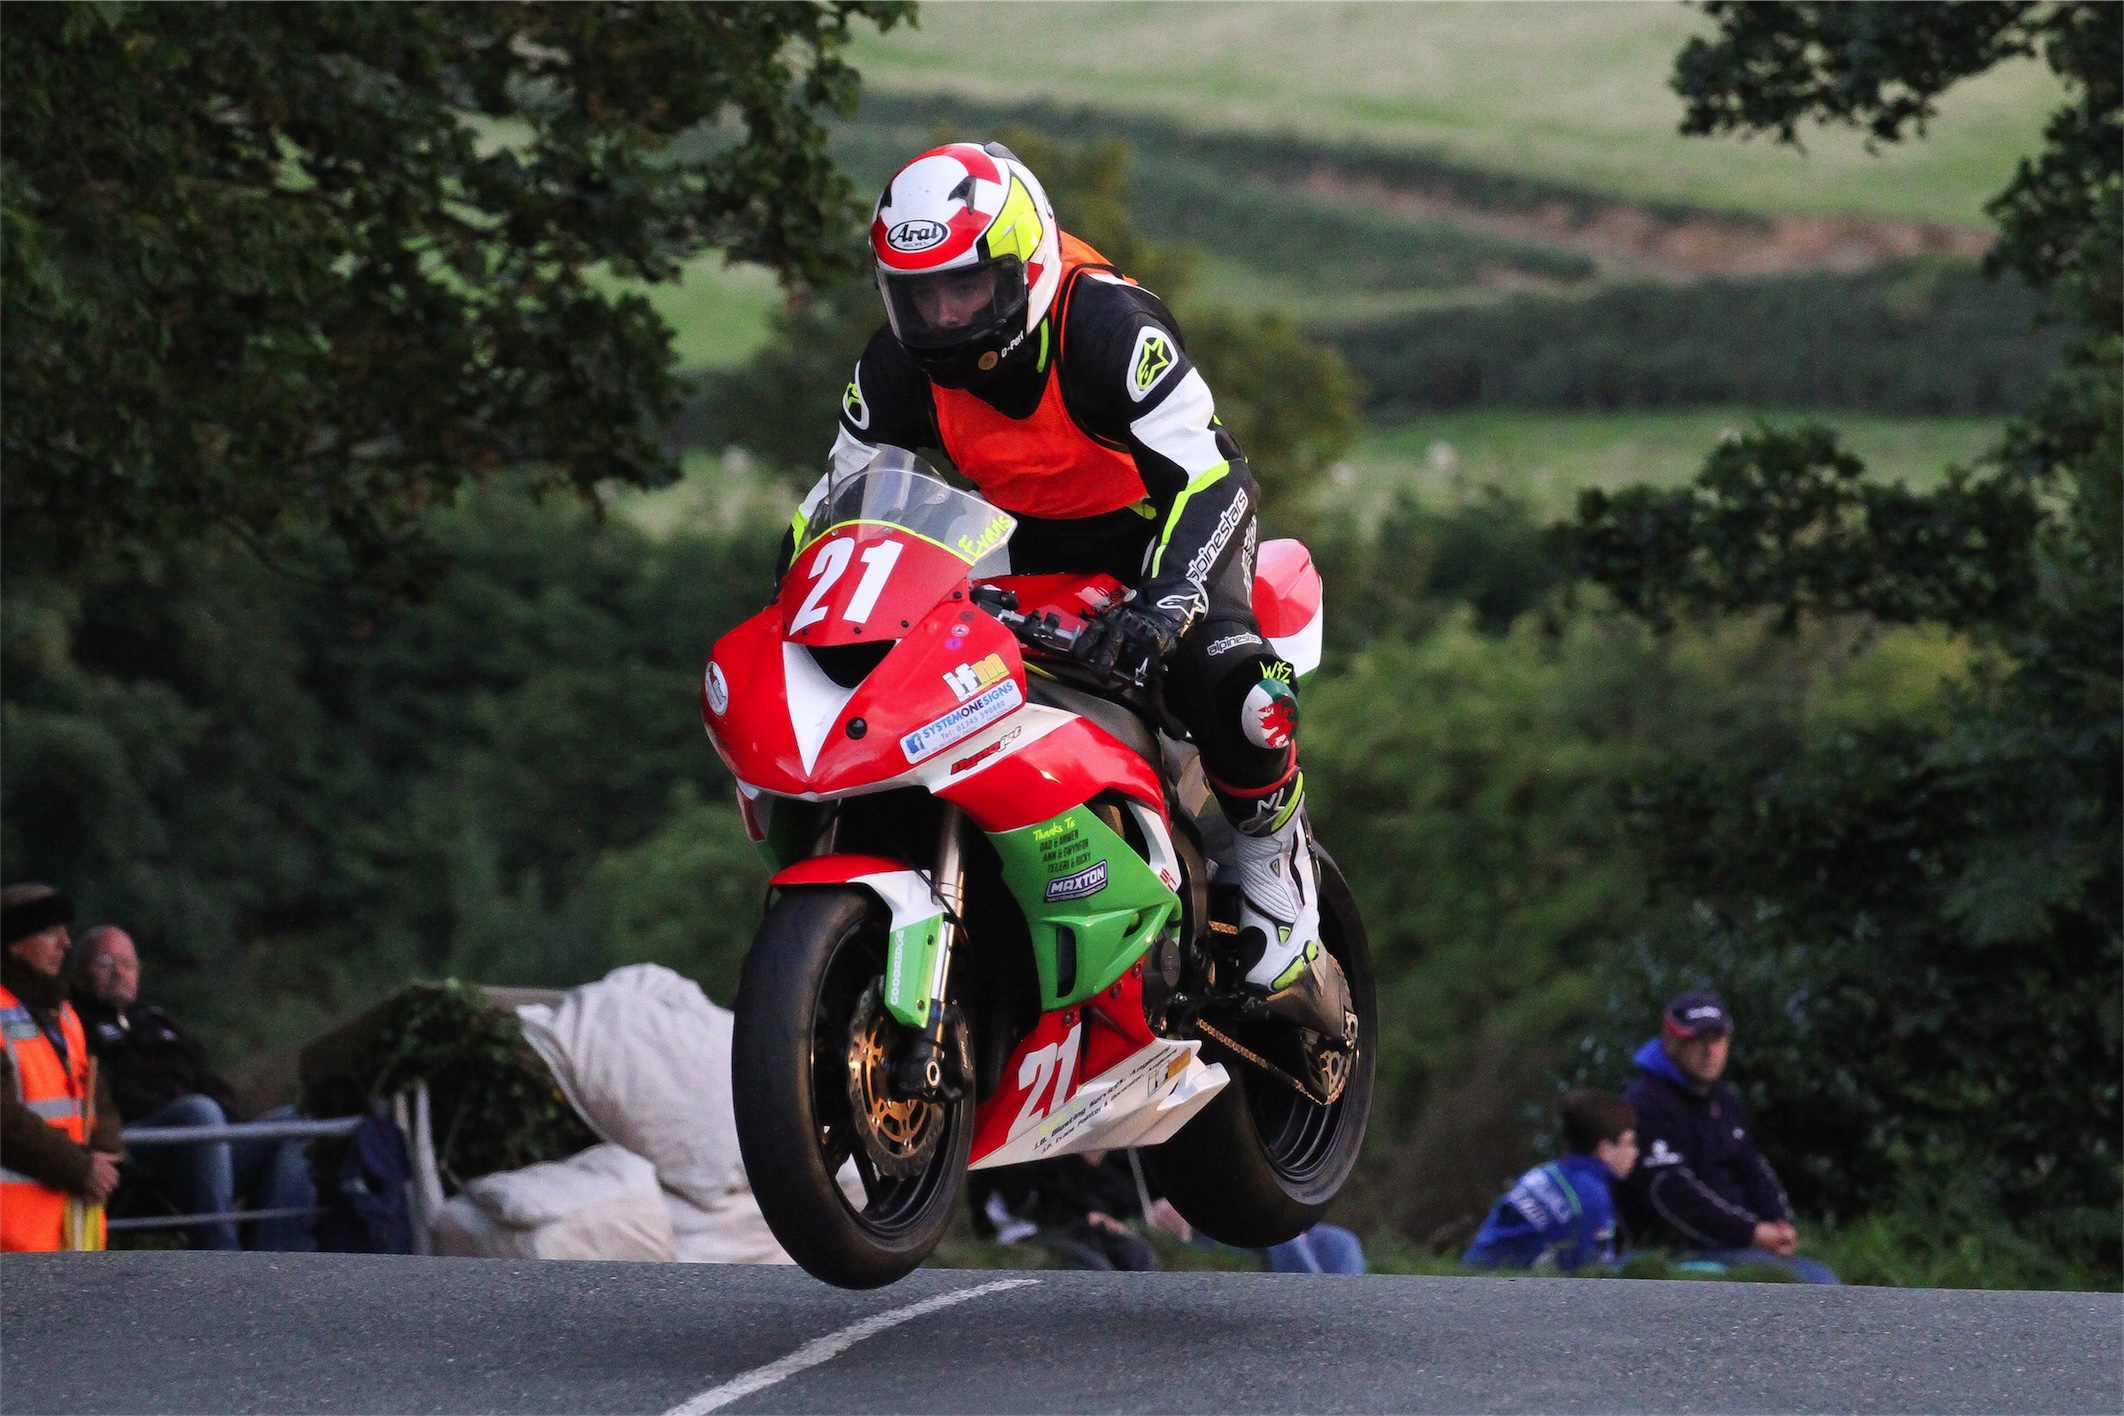 Barry Evans Looks Forward To 2016 Manx Grand Prix